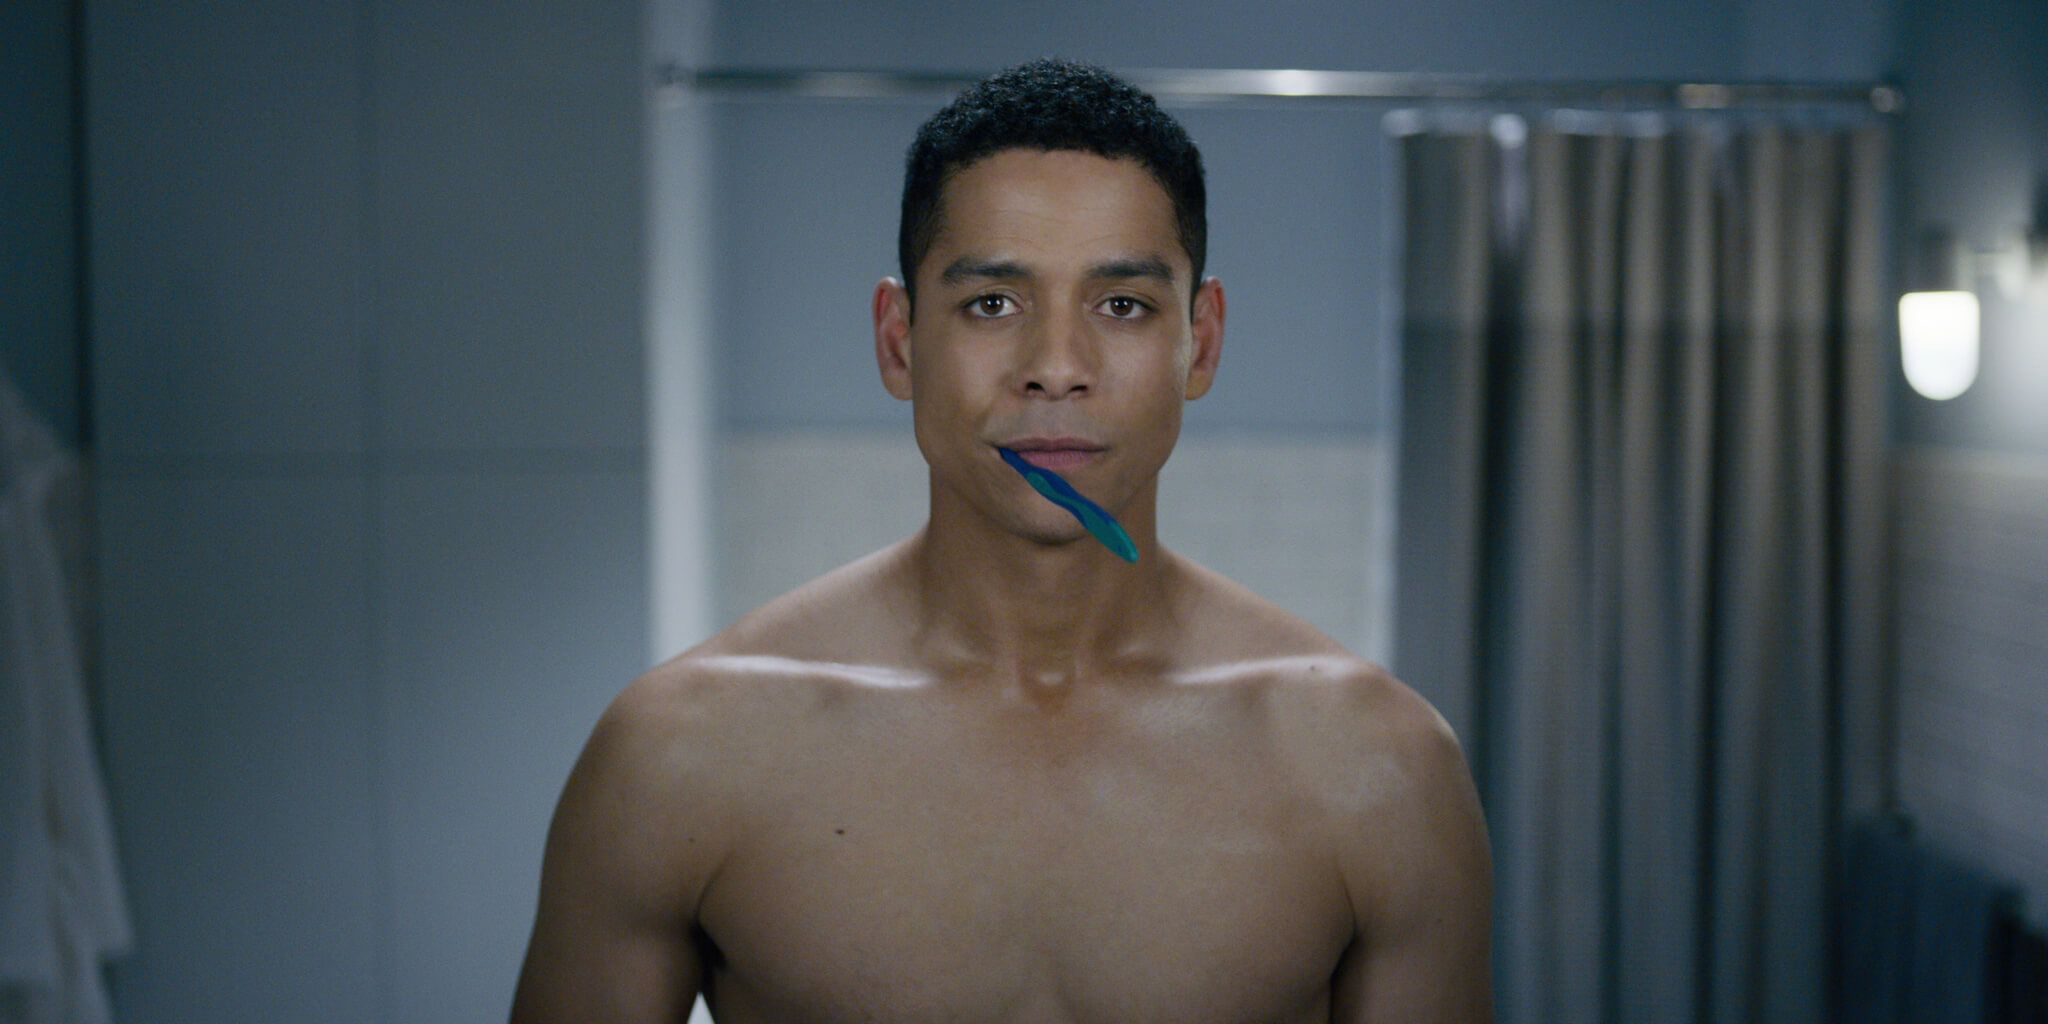 Image may contain: You season 2 cast, You, Netflix, cast, season 2, Charlie Barnett, Gabe,  Finger, Face, Head, Person, Human